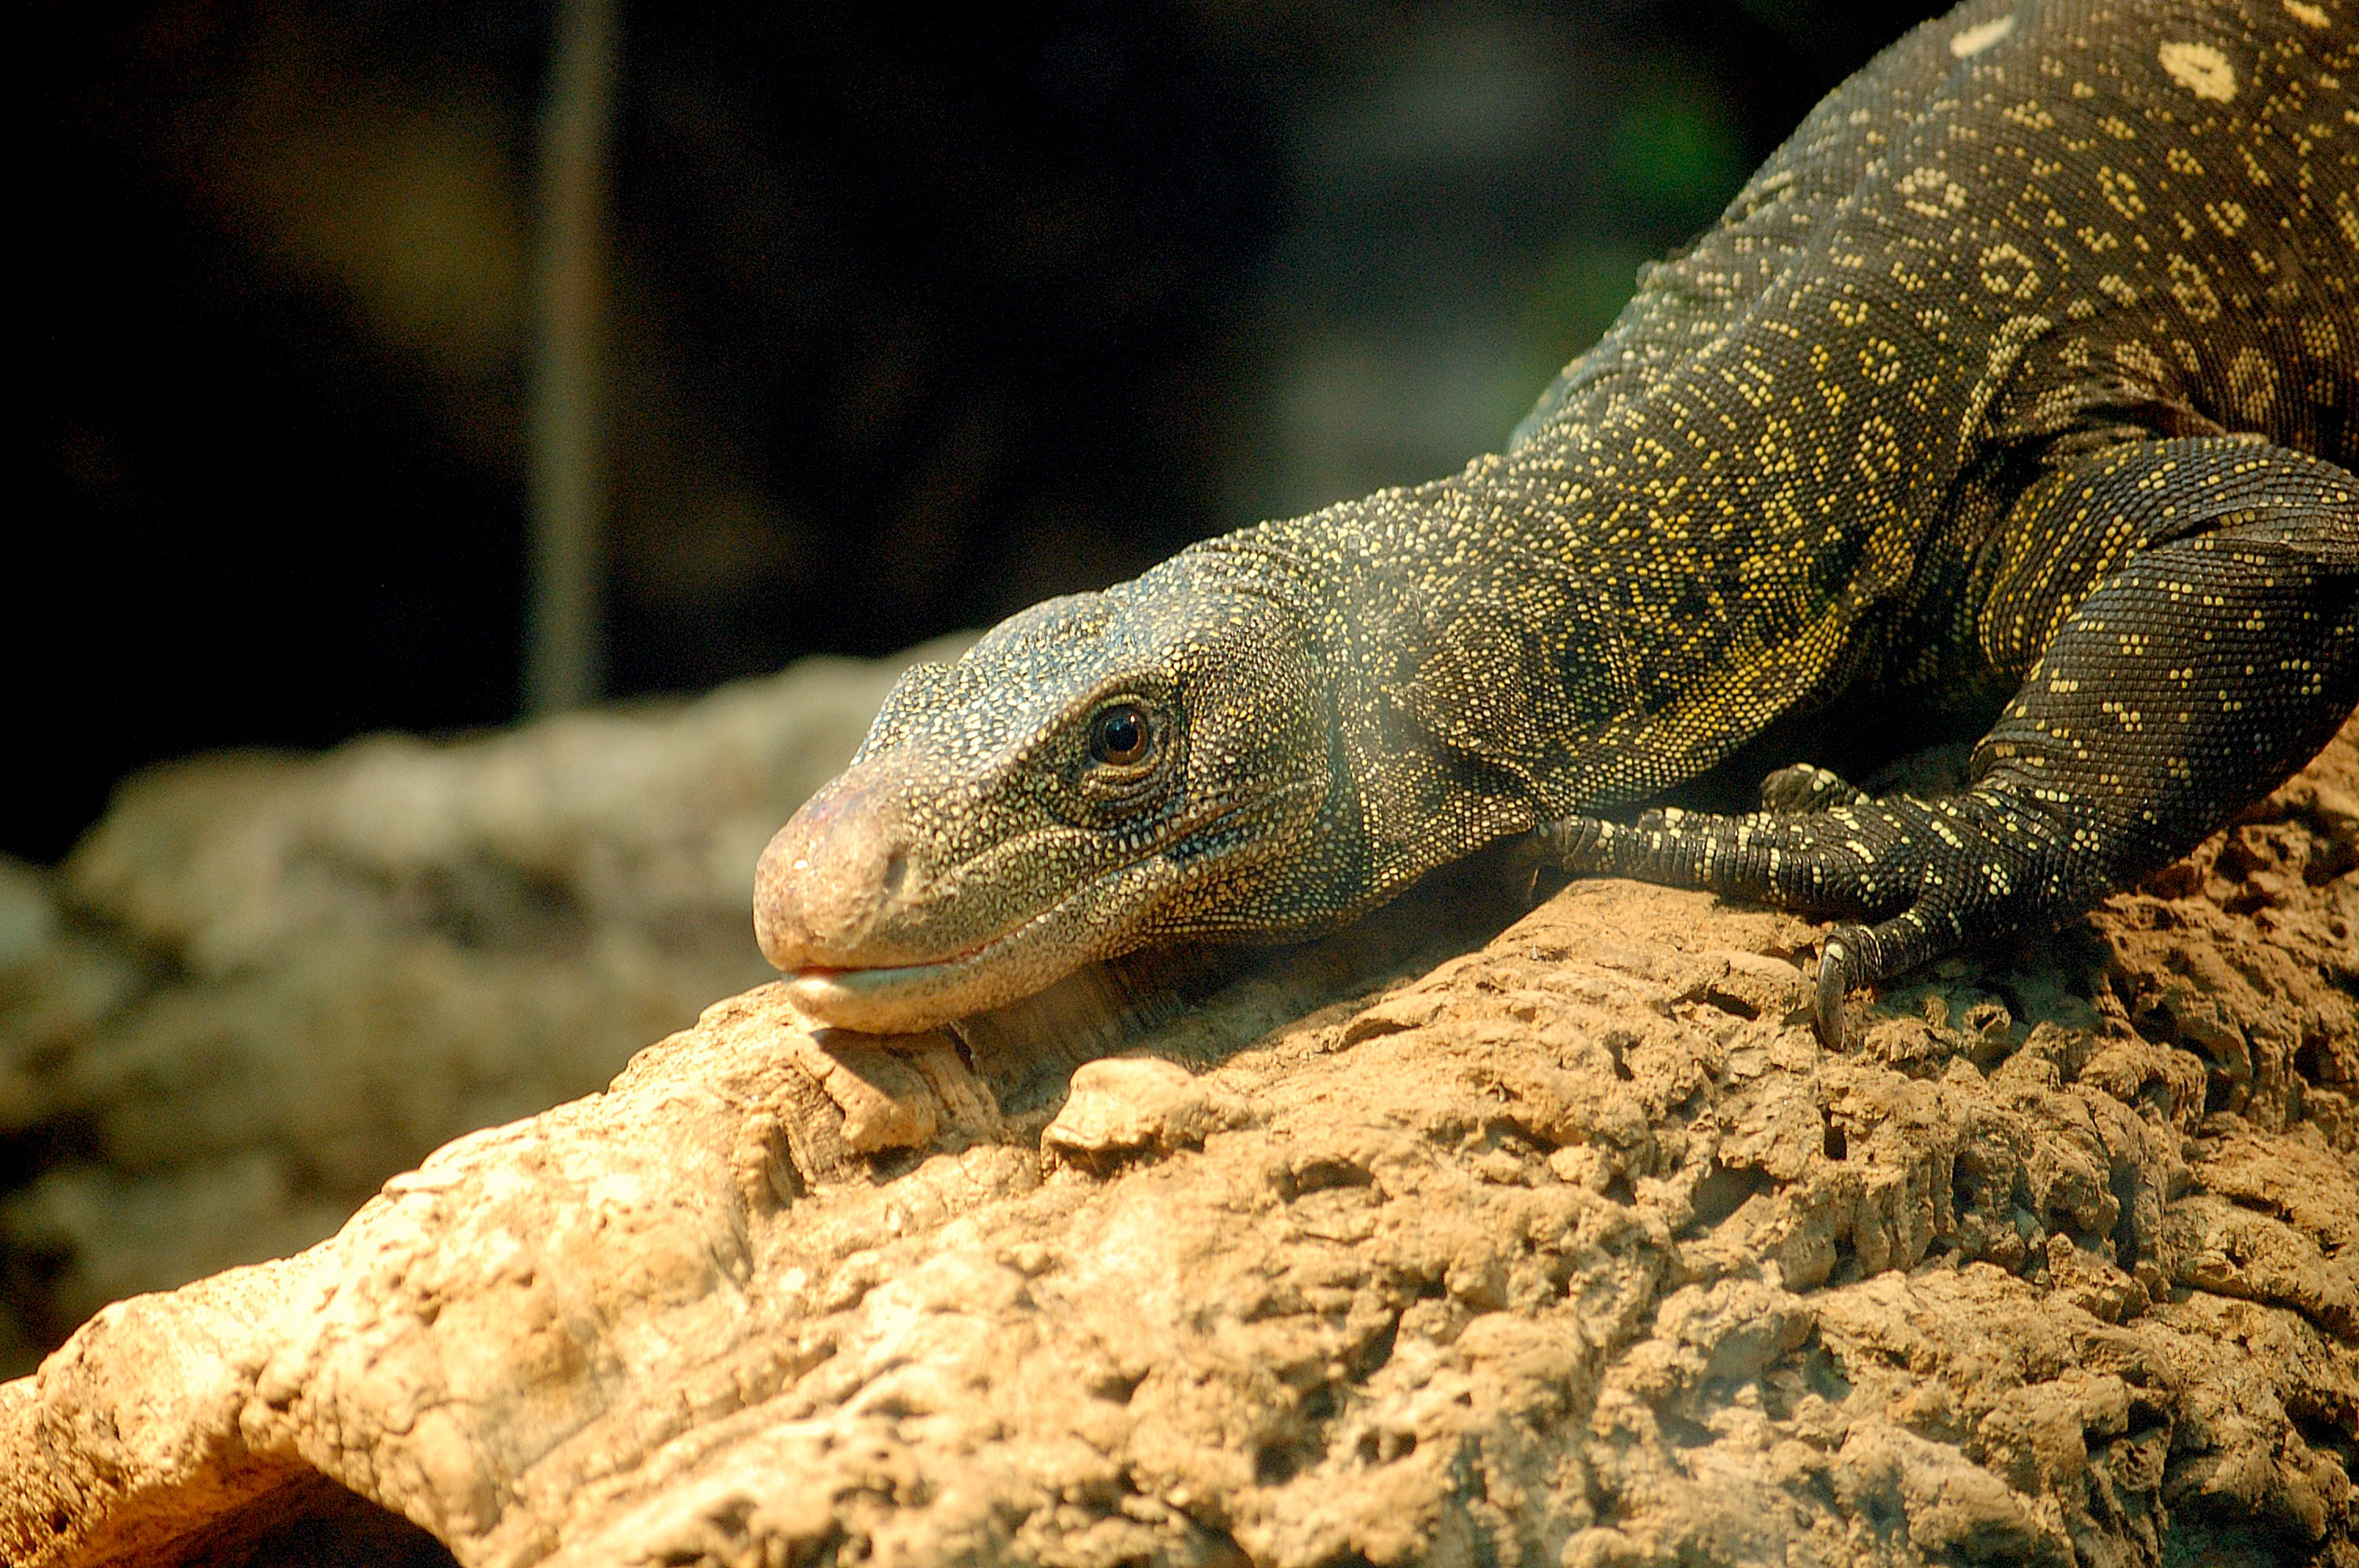 Gray Lizard on Brown Surface